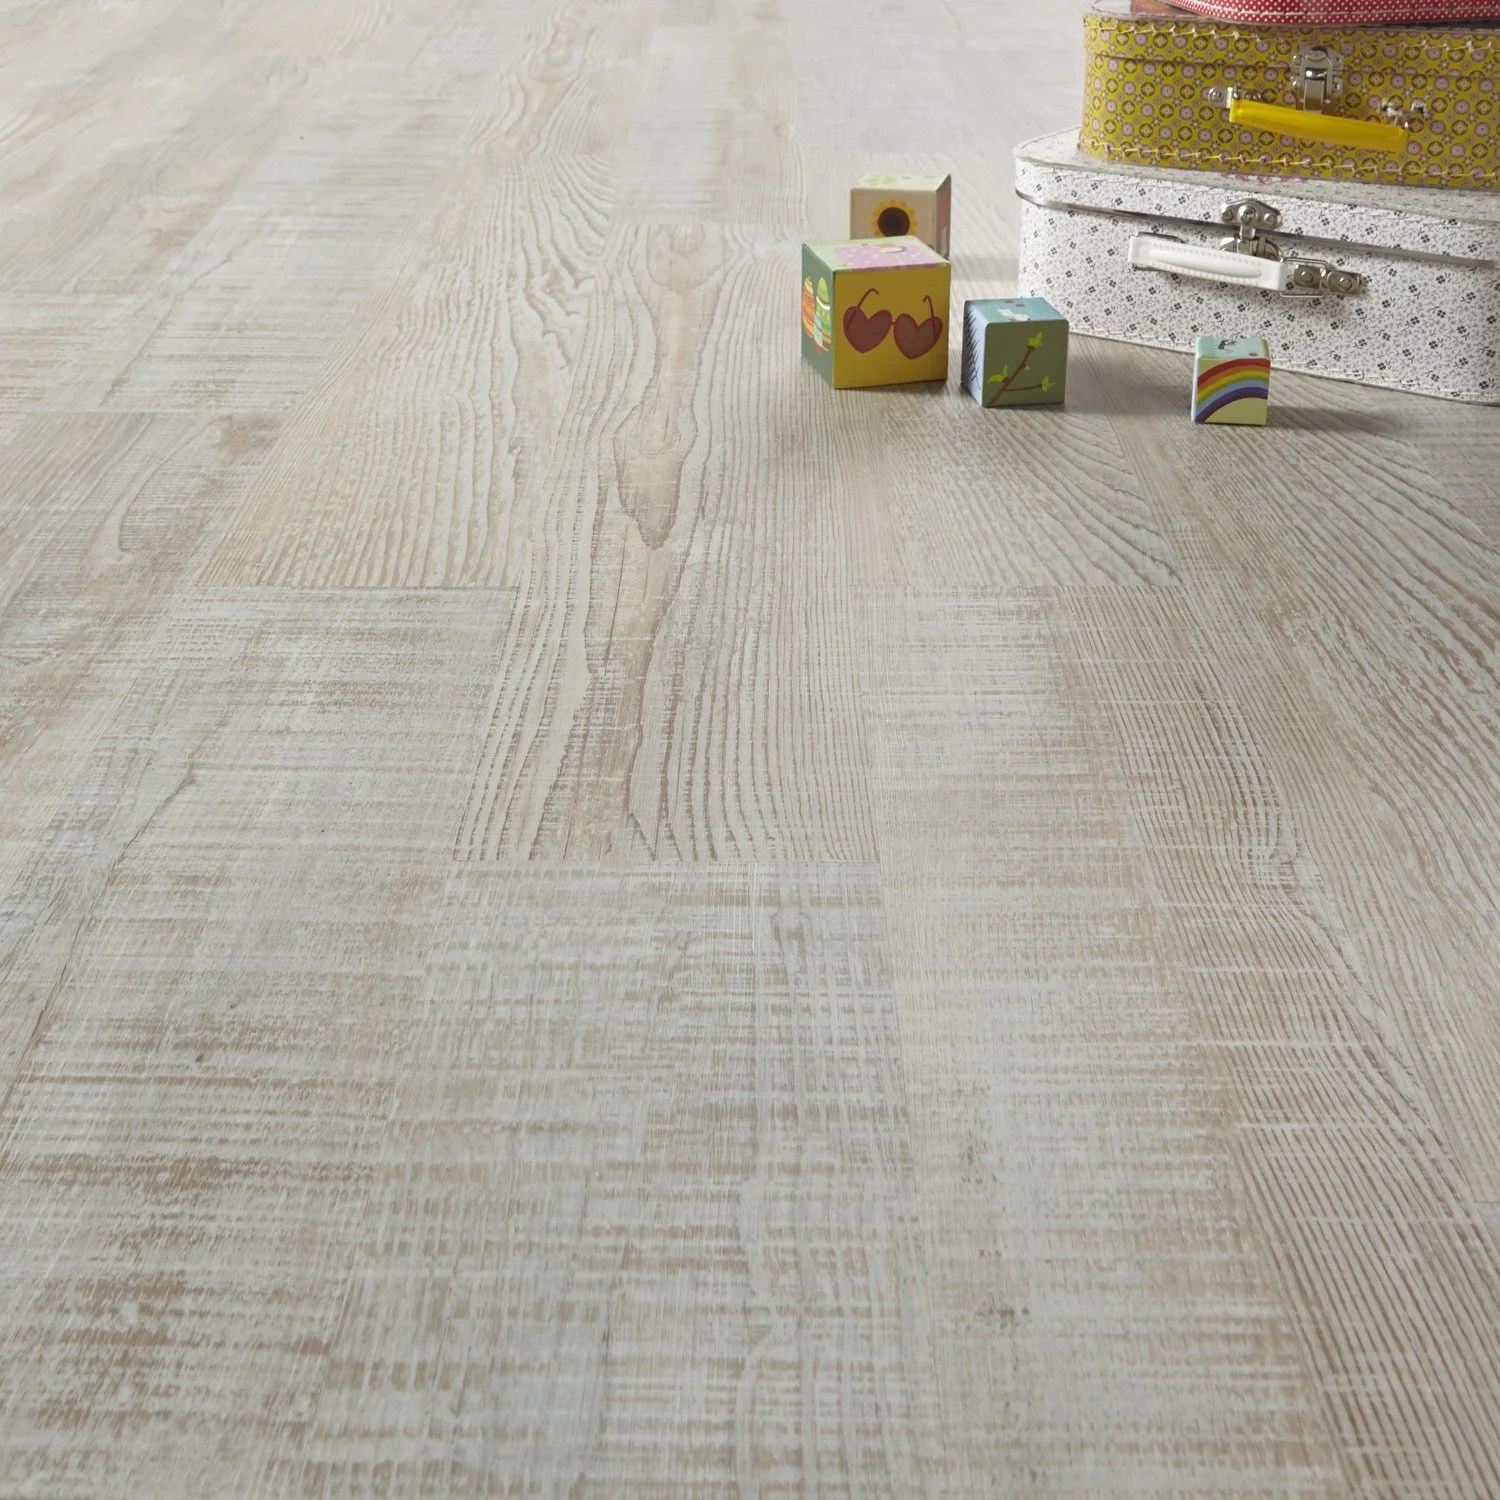 Lame Vinyle Gerflor Lame Pvc Clipsable Marron Candelnut Senso Lock Gerflor